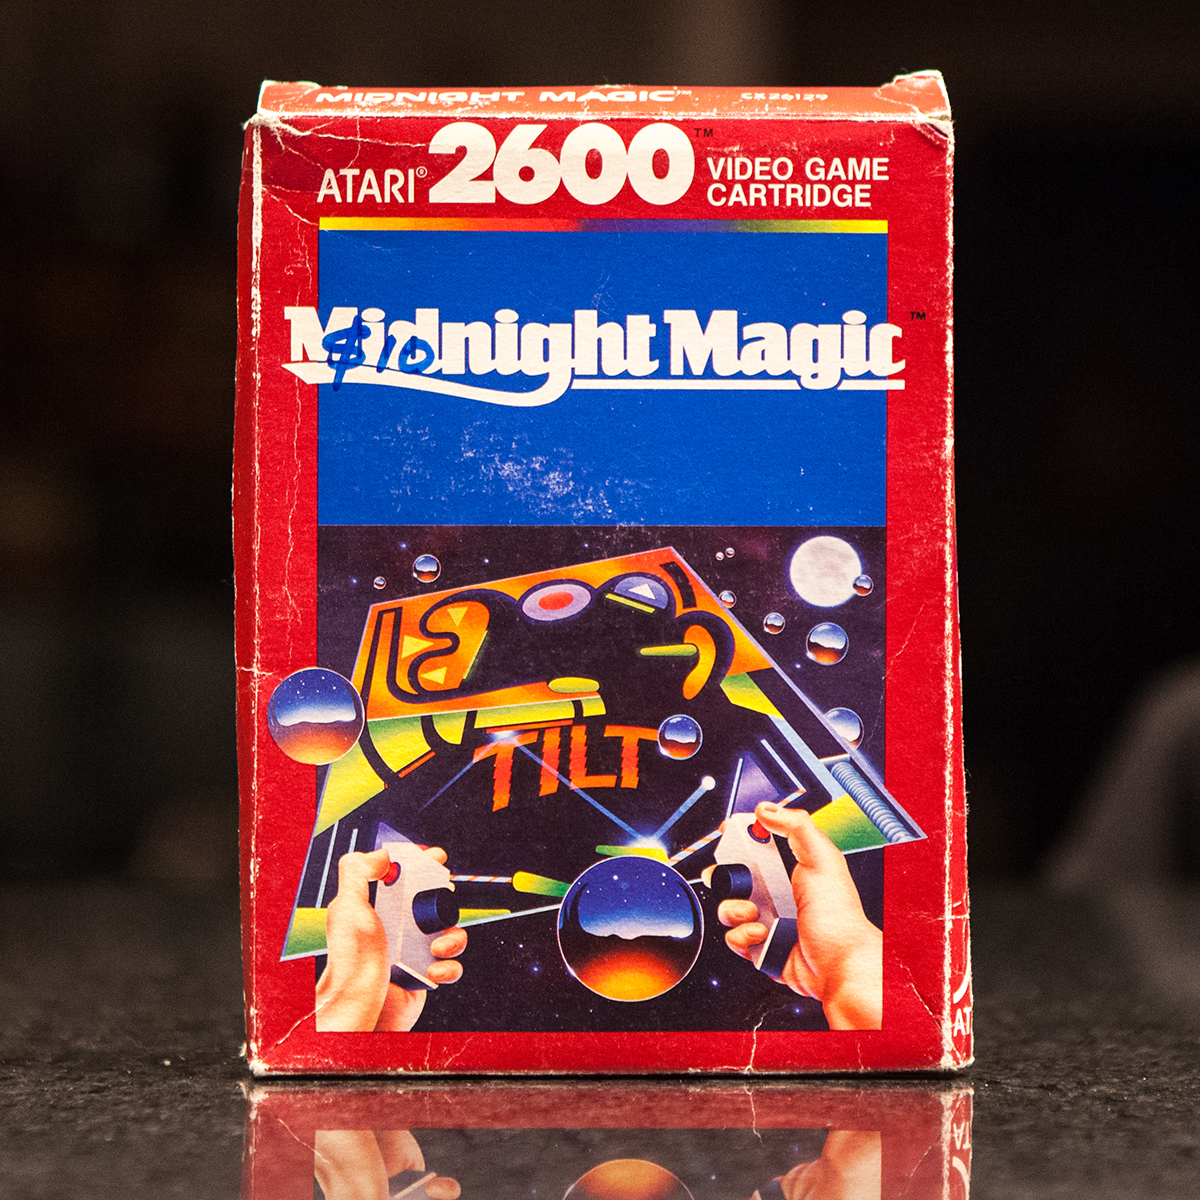 Midnight Magic - Atari 2600